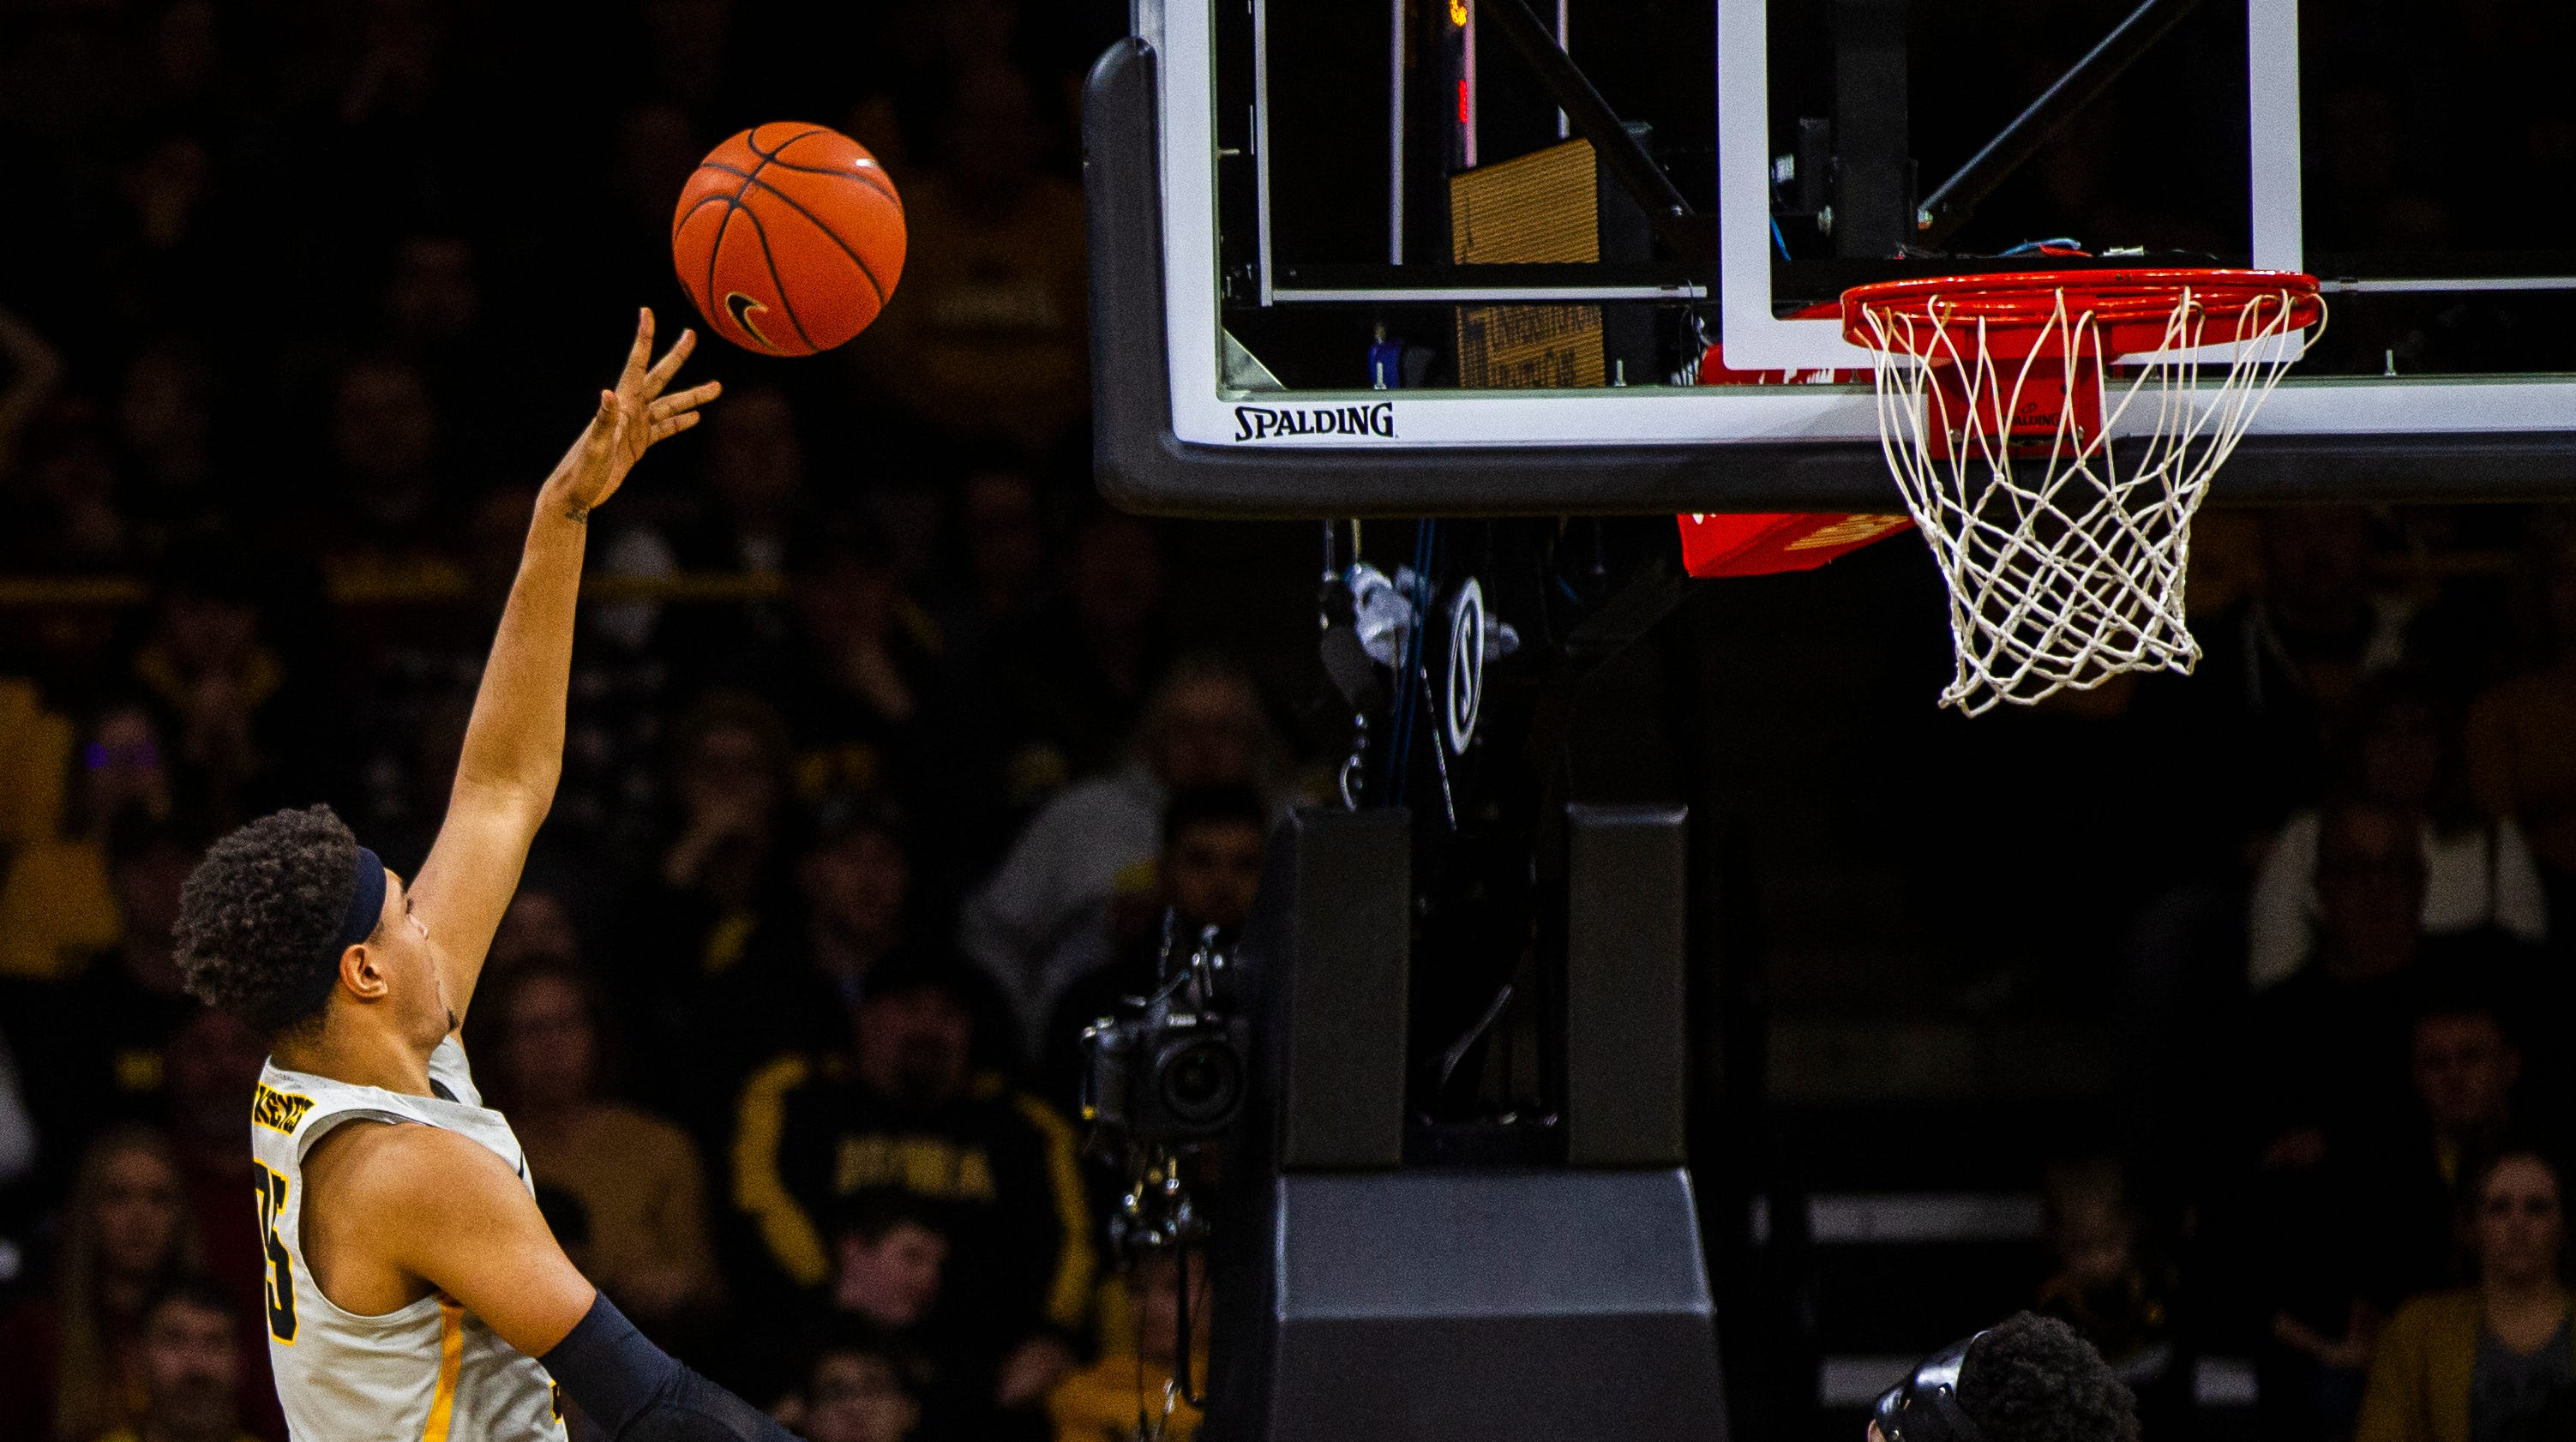 'I think I've got my swagger back': Iowa's Cordell Pemsl makes surprise return to court